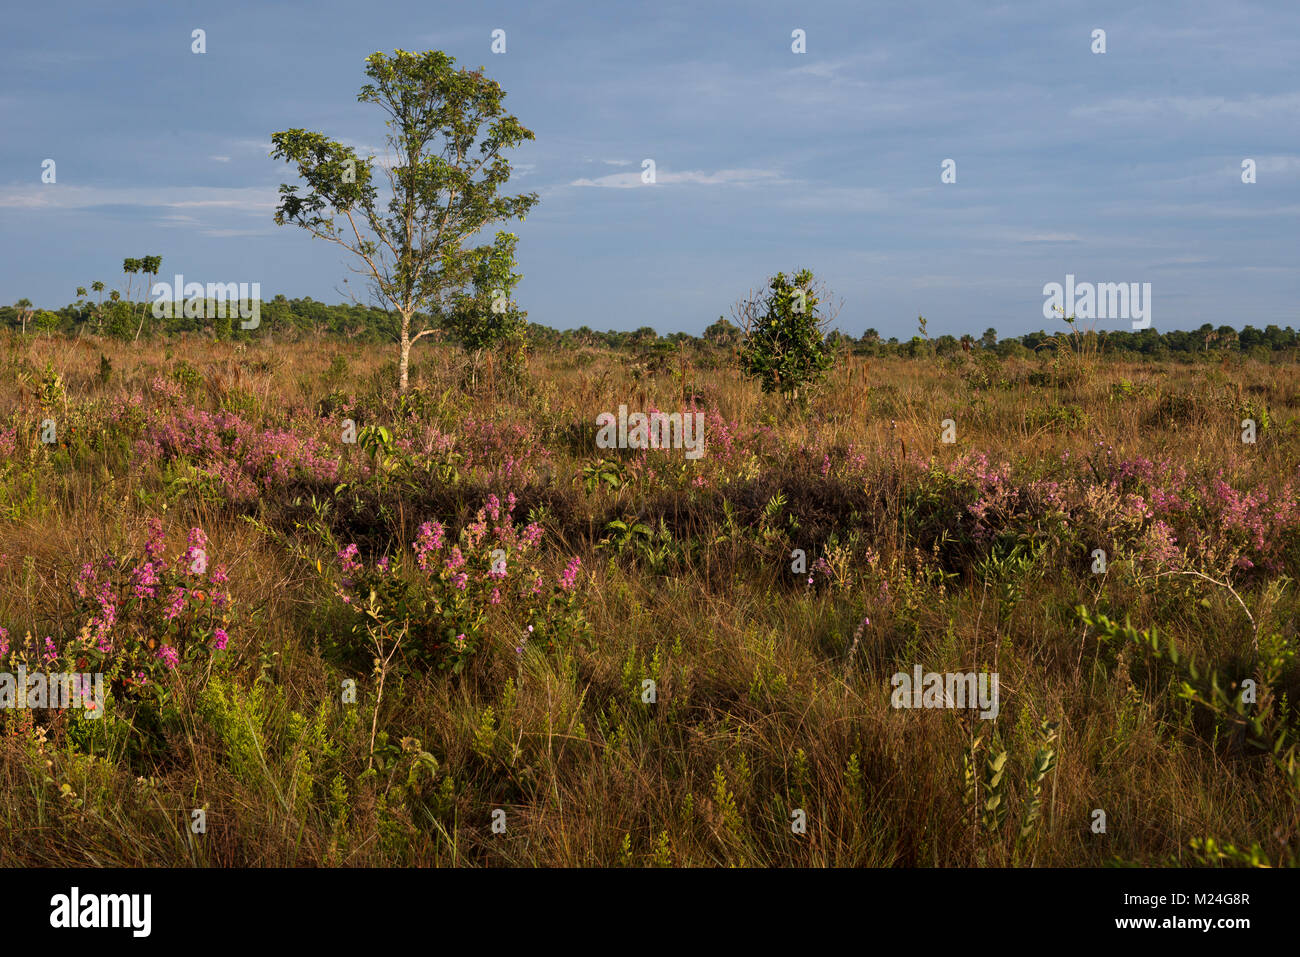 Grassland at Emas National Park, Goiás, Brazil - Stock Image